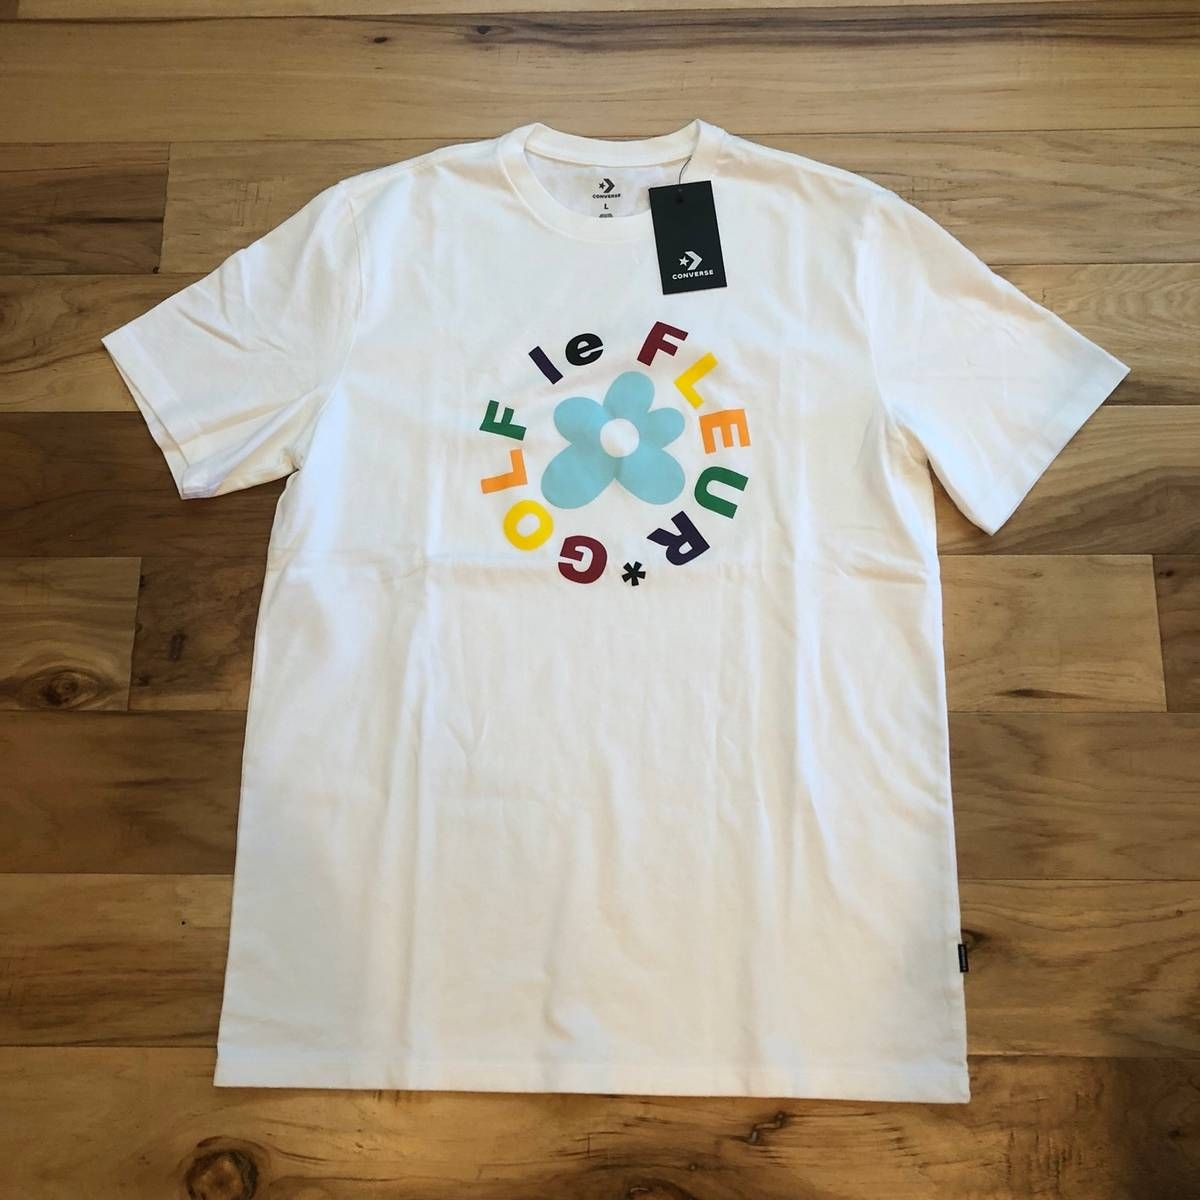 aa13a8d2236fe7 Converse Golf Wang Le Fleur Logo Tshirt Size l - Short Sleeve T-Shirts for  Sale - Grailed